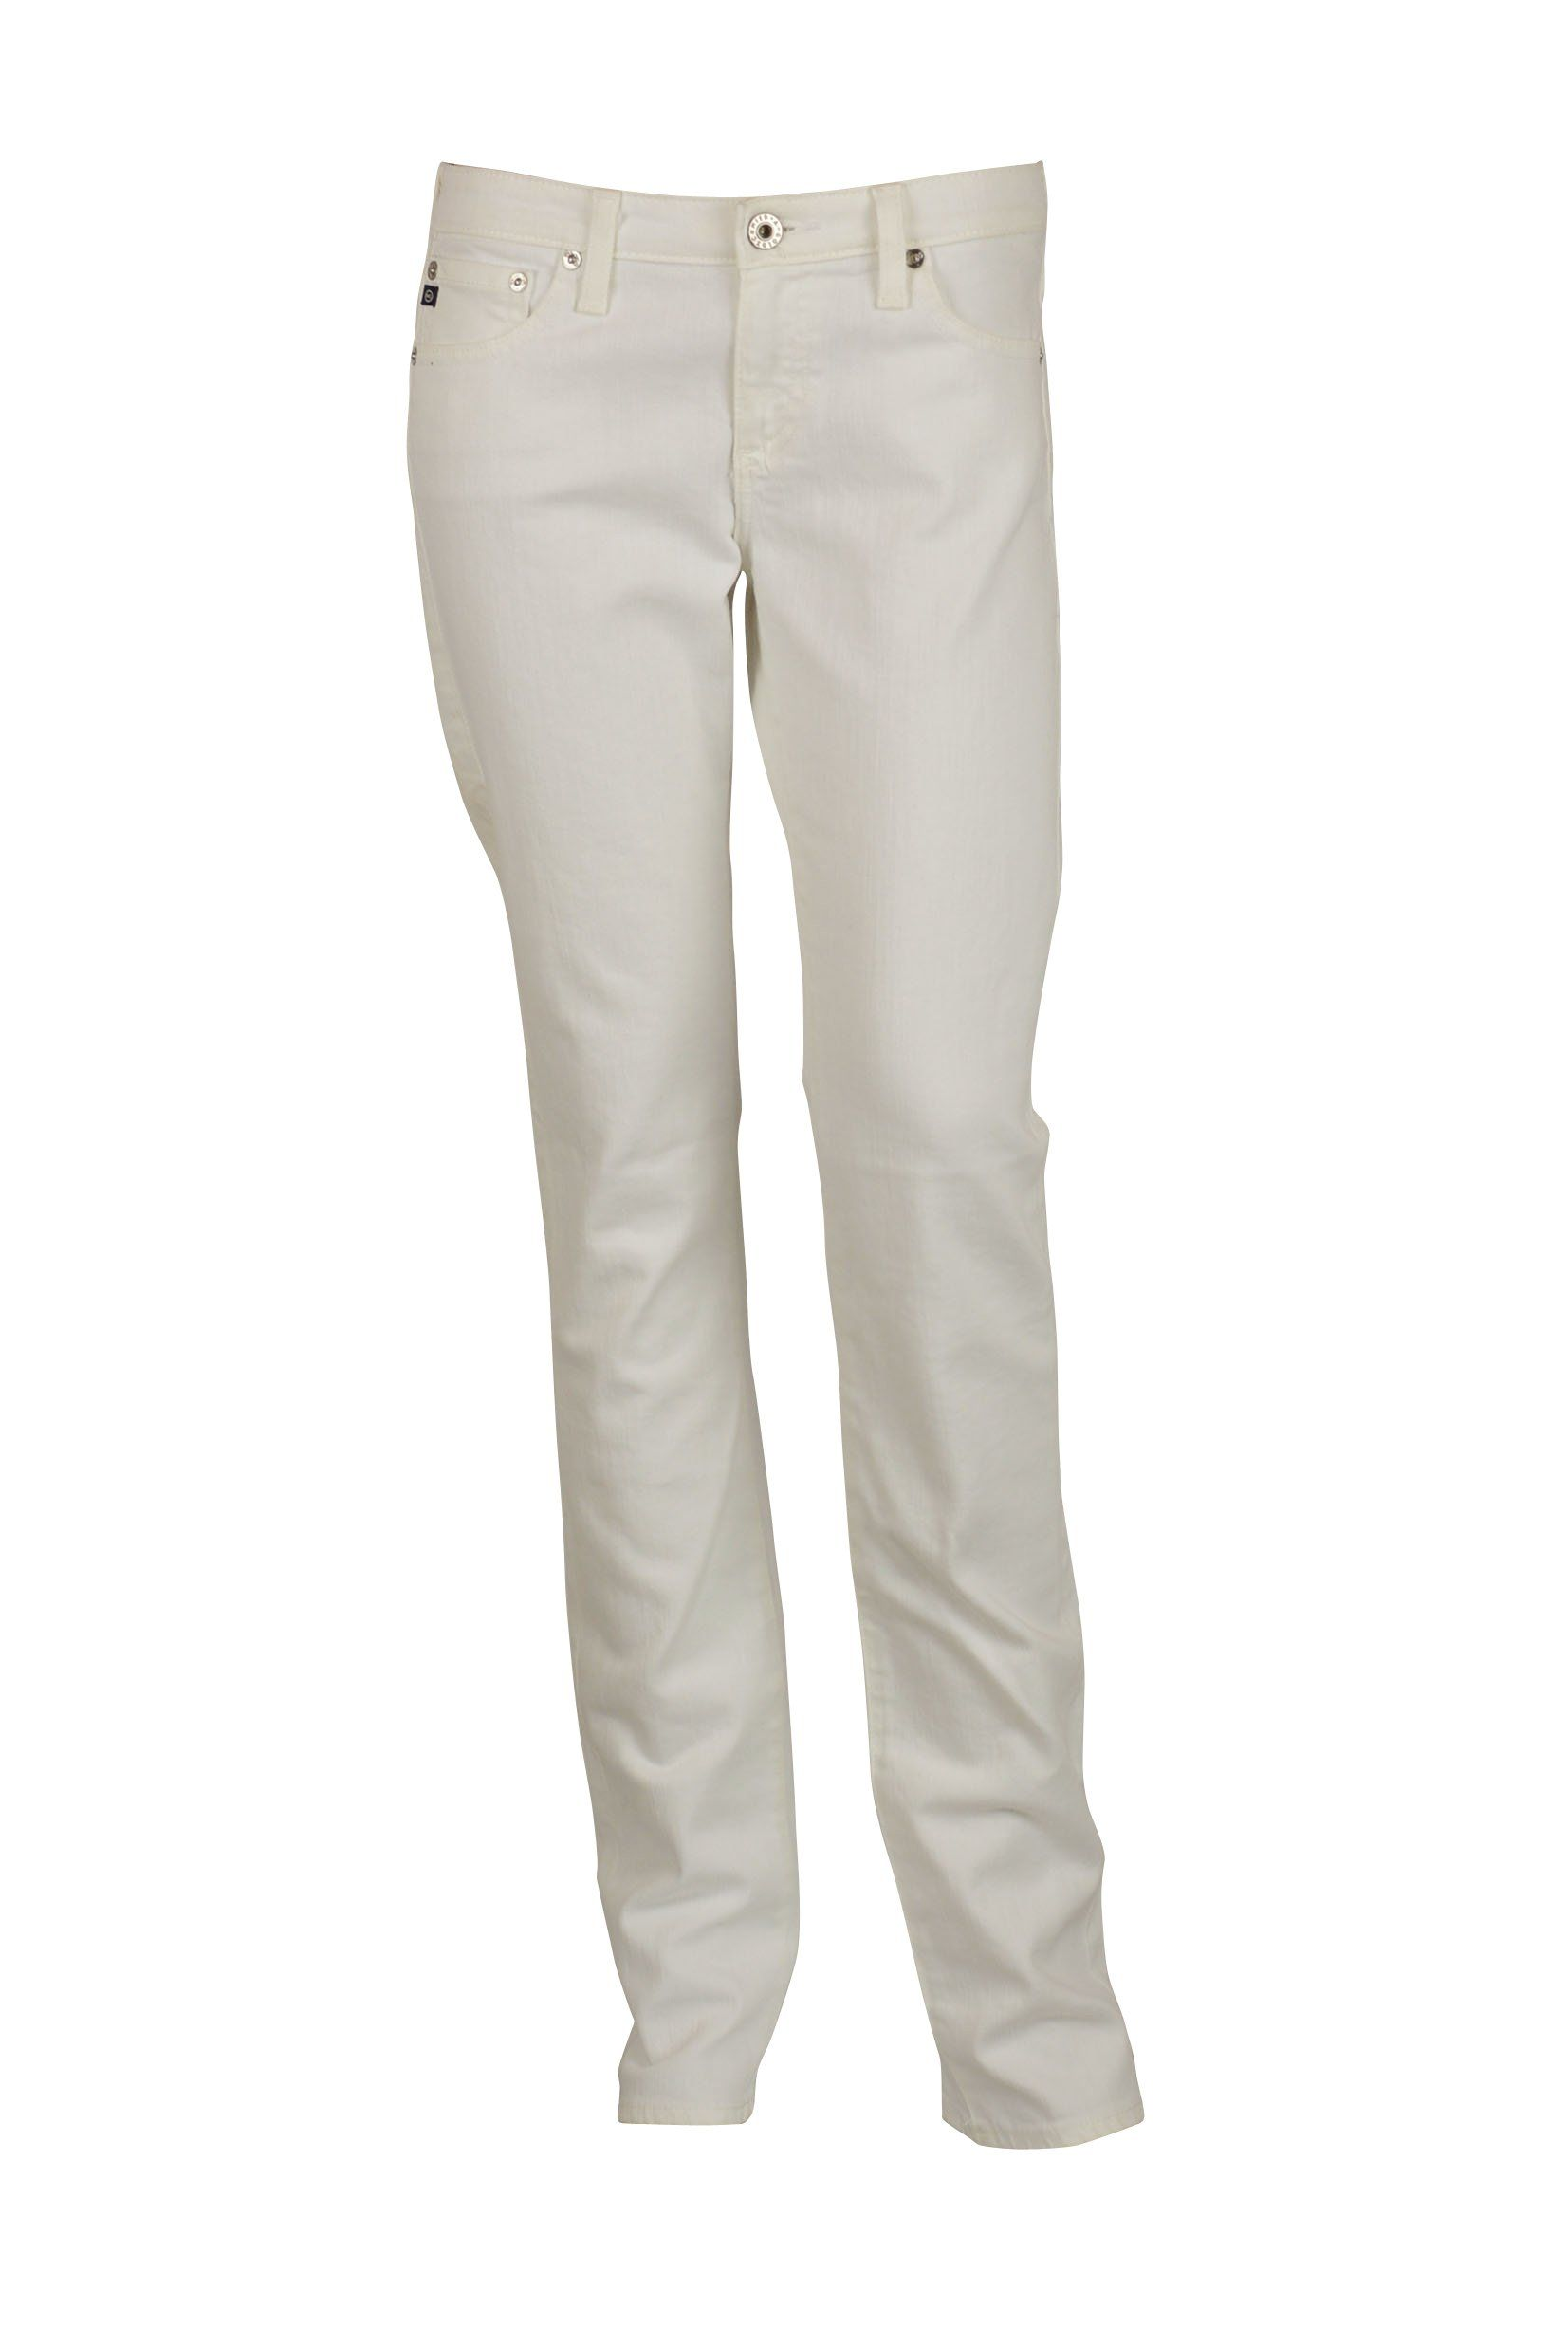 AG Adriano Goldschmied Womens White Charlotte Straight Leg Jeans 24. The Charlotte Straight Leg. 98% Cotton, 2% EA. Machine Wash. AG Adriano Goldschmied.